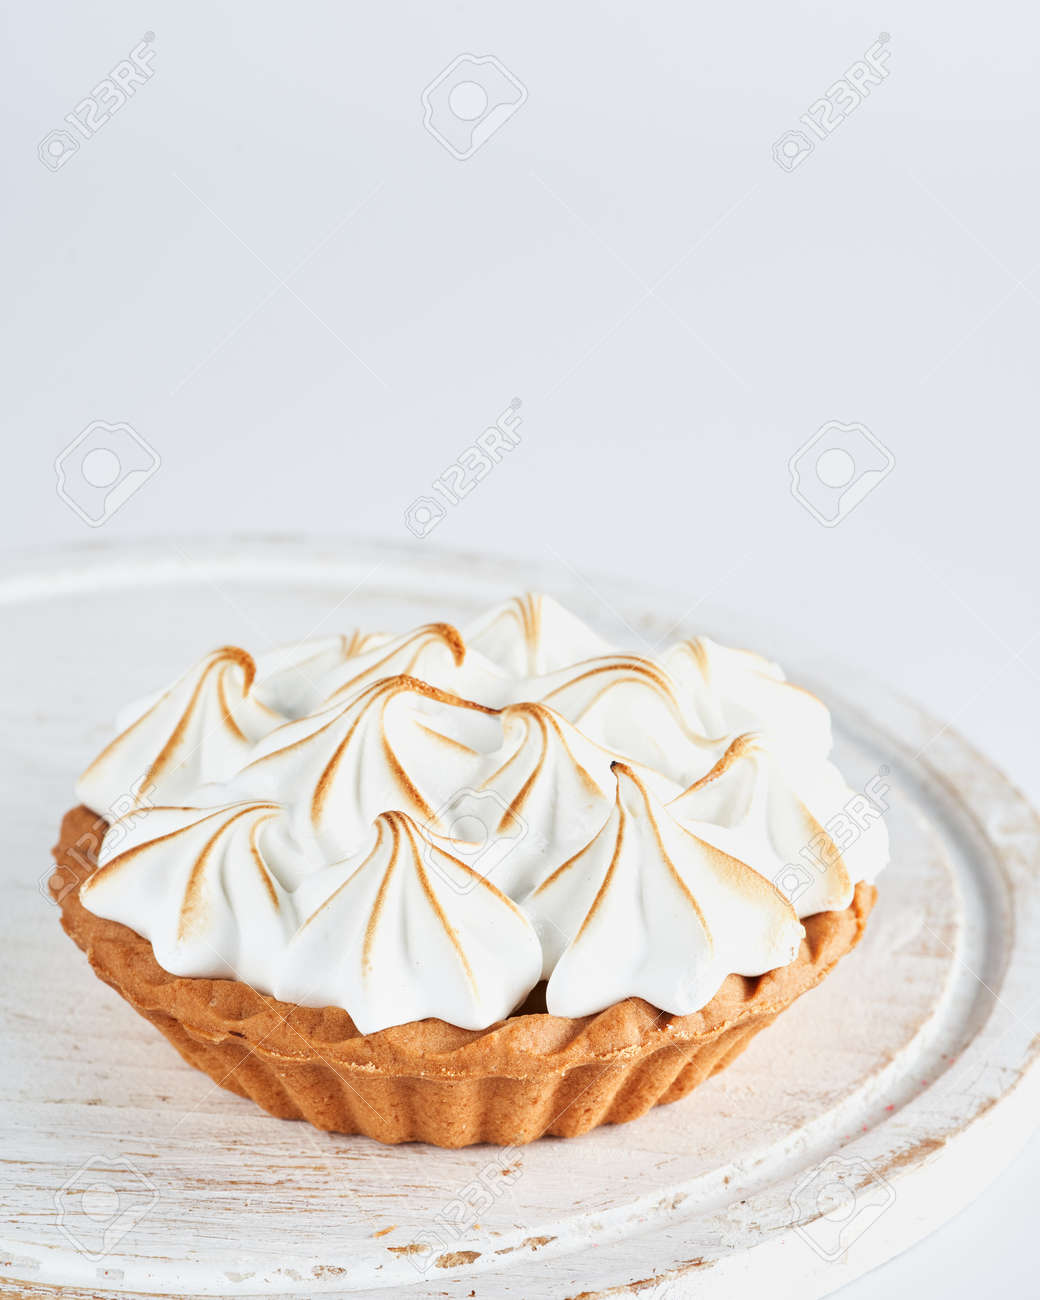 Lemon Curd and Meringue Mini Tart Pie on white background, selective focus, space for text. Bakery pastry dessert concept. - 169659240